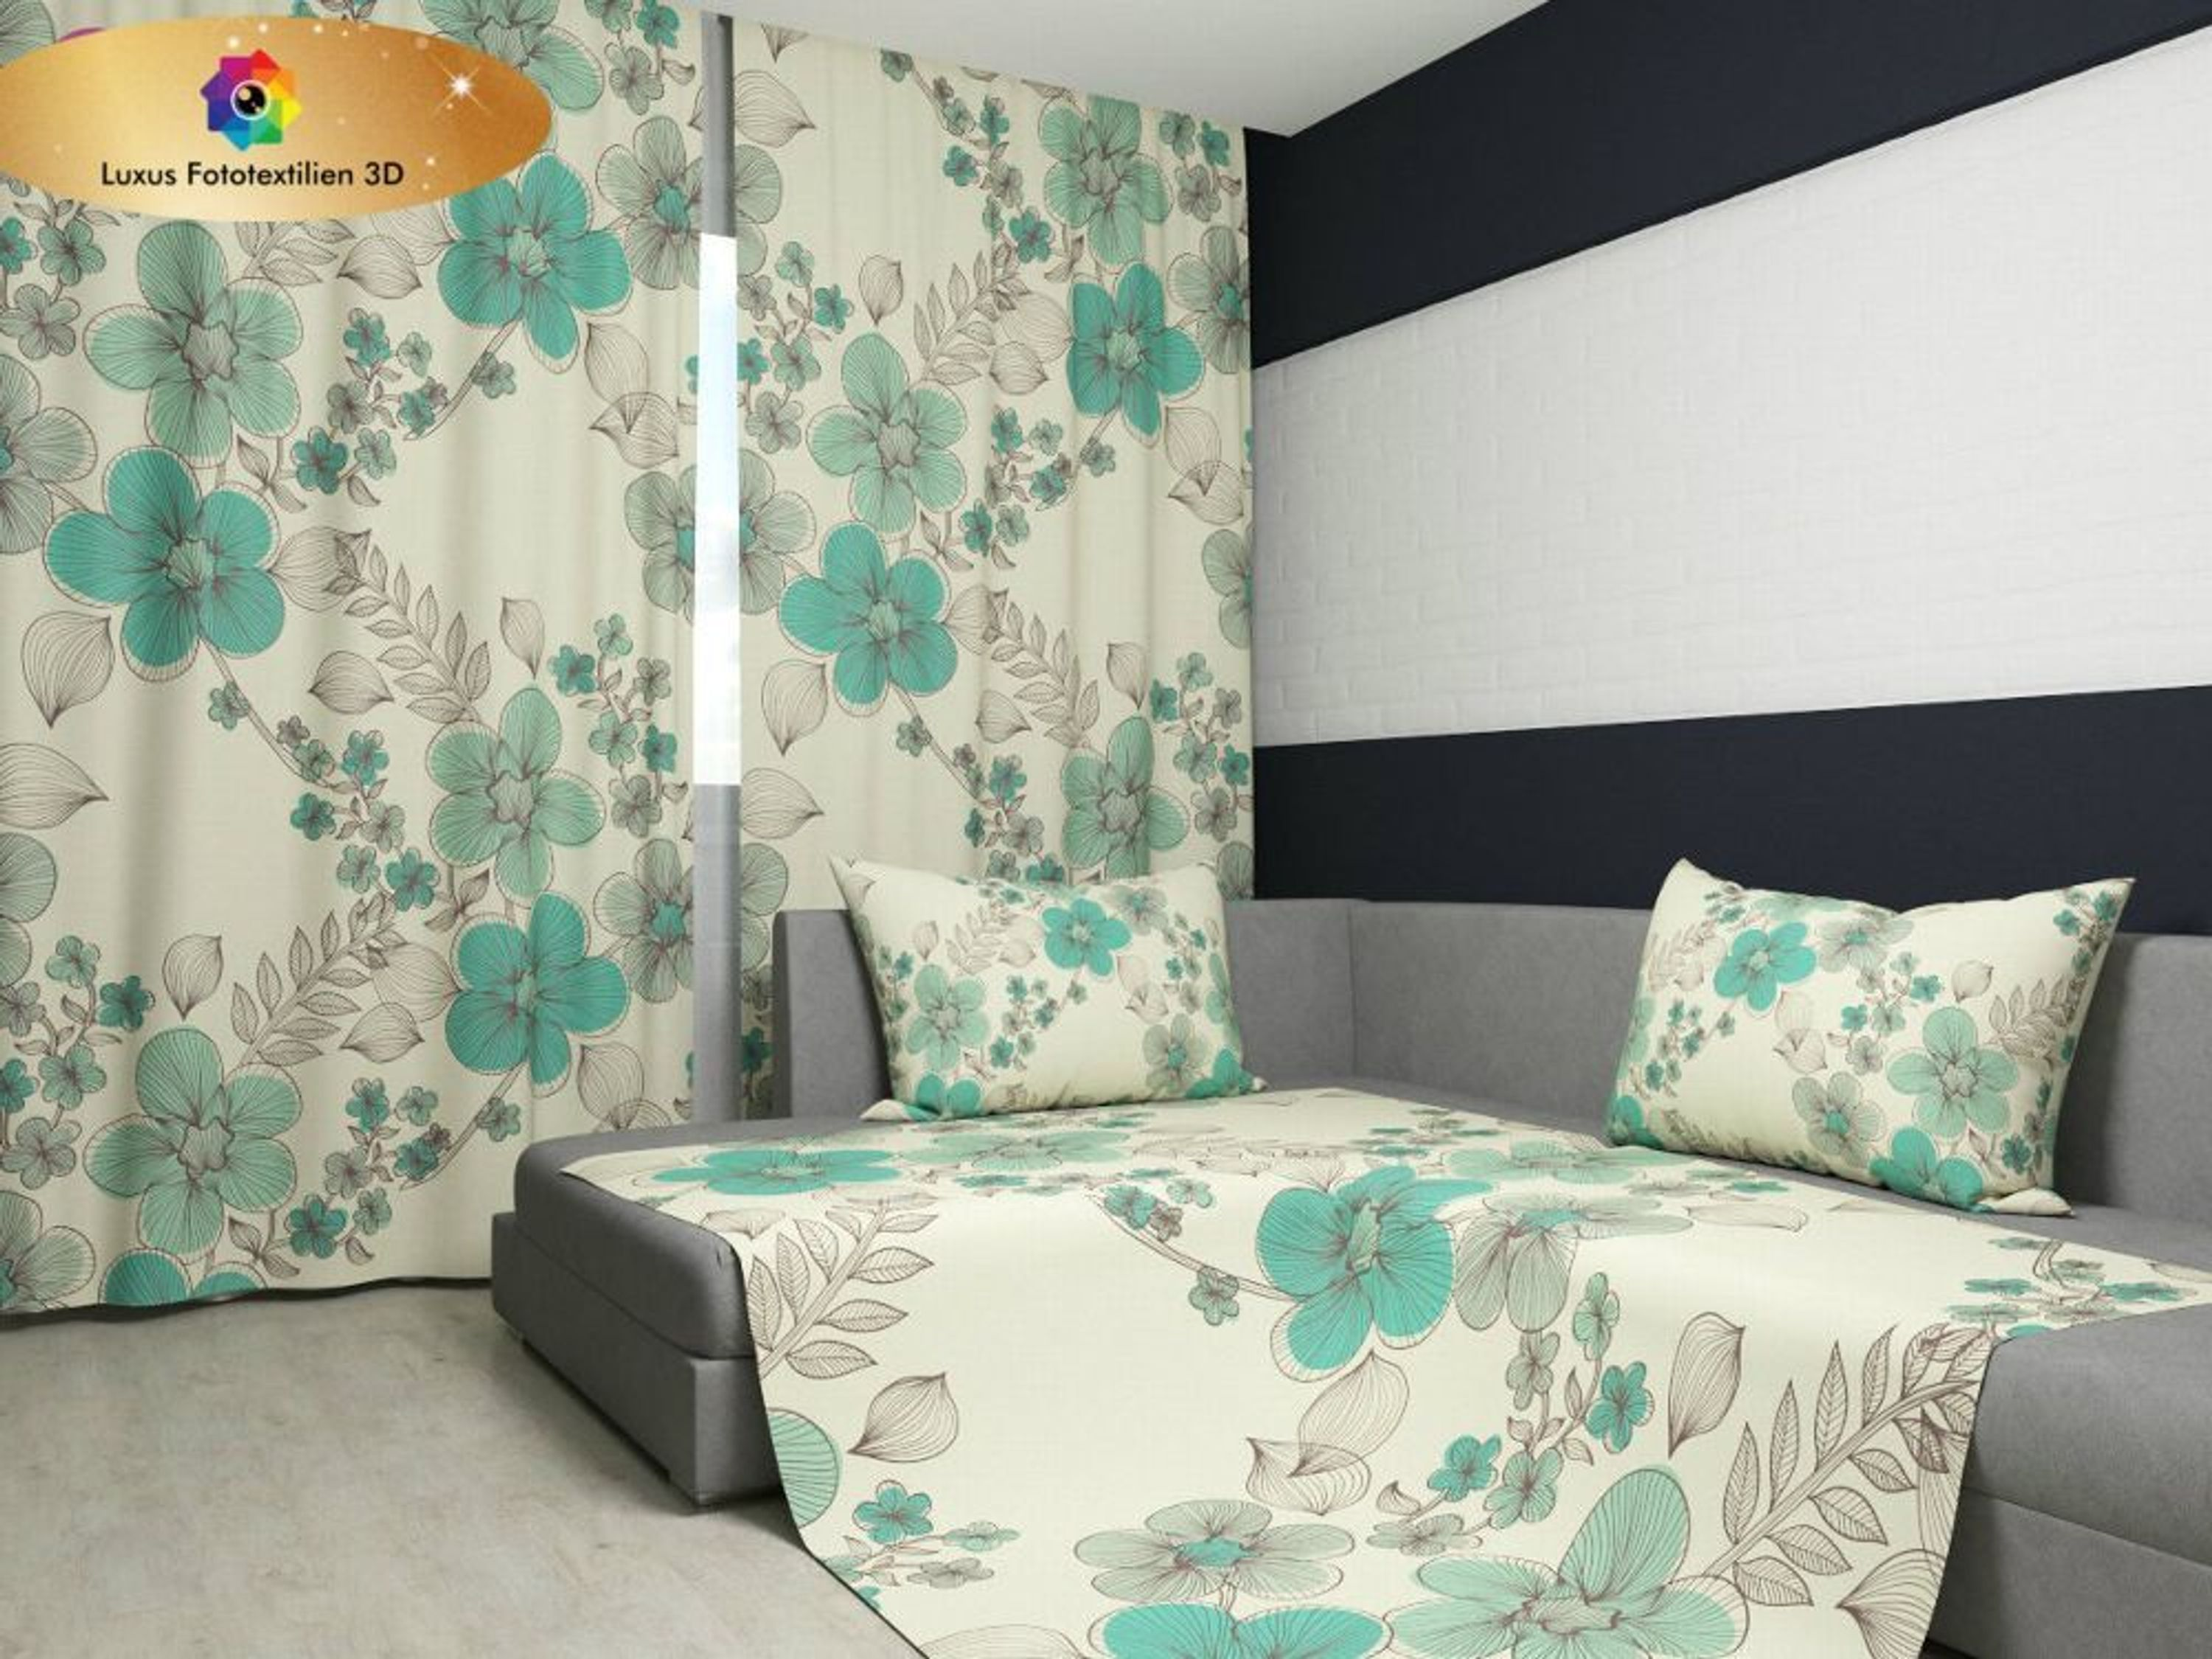 fotogardine 3d blumenmuster t rkis foto vorhang gardinen. Black Bedroom Furniture Sets. Home Design Ideas